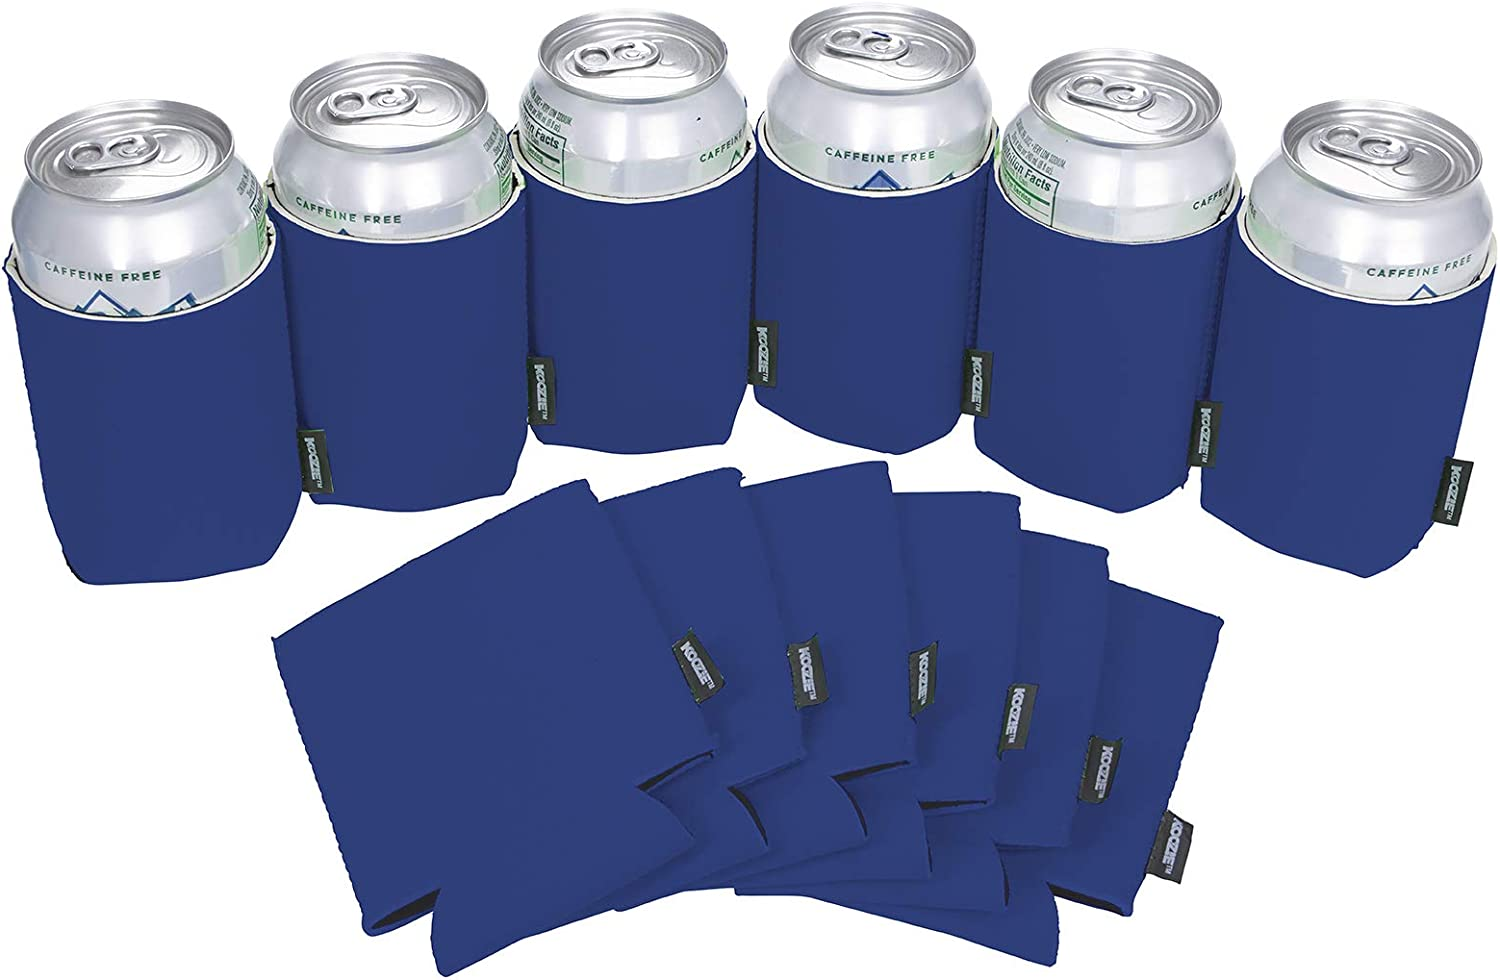 Koozie Can Cooler Blank Neoprene Beer Coozie for Cans, Bulk Insulated 12oz Beverage Holder Personalized Gifts for Events, Bachelorette Parties, Weddings, Birthdays - Pack of 12 Sleeves (Royal Blue)